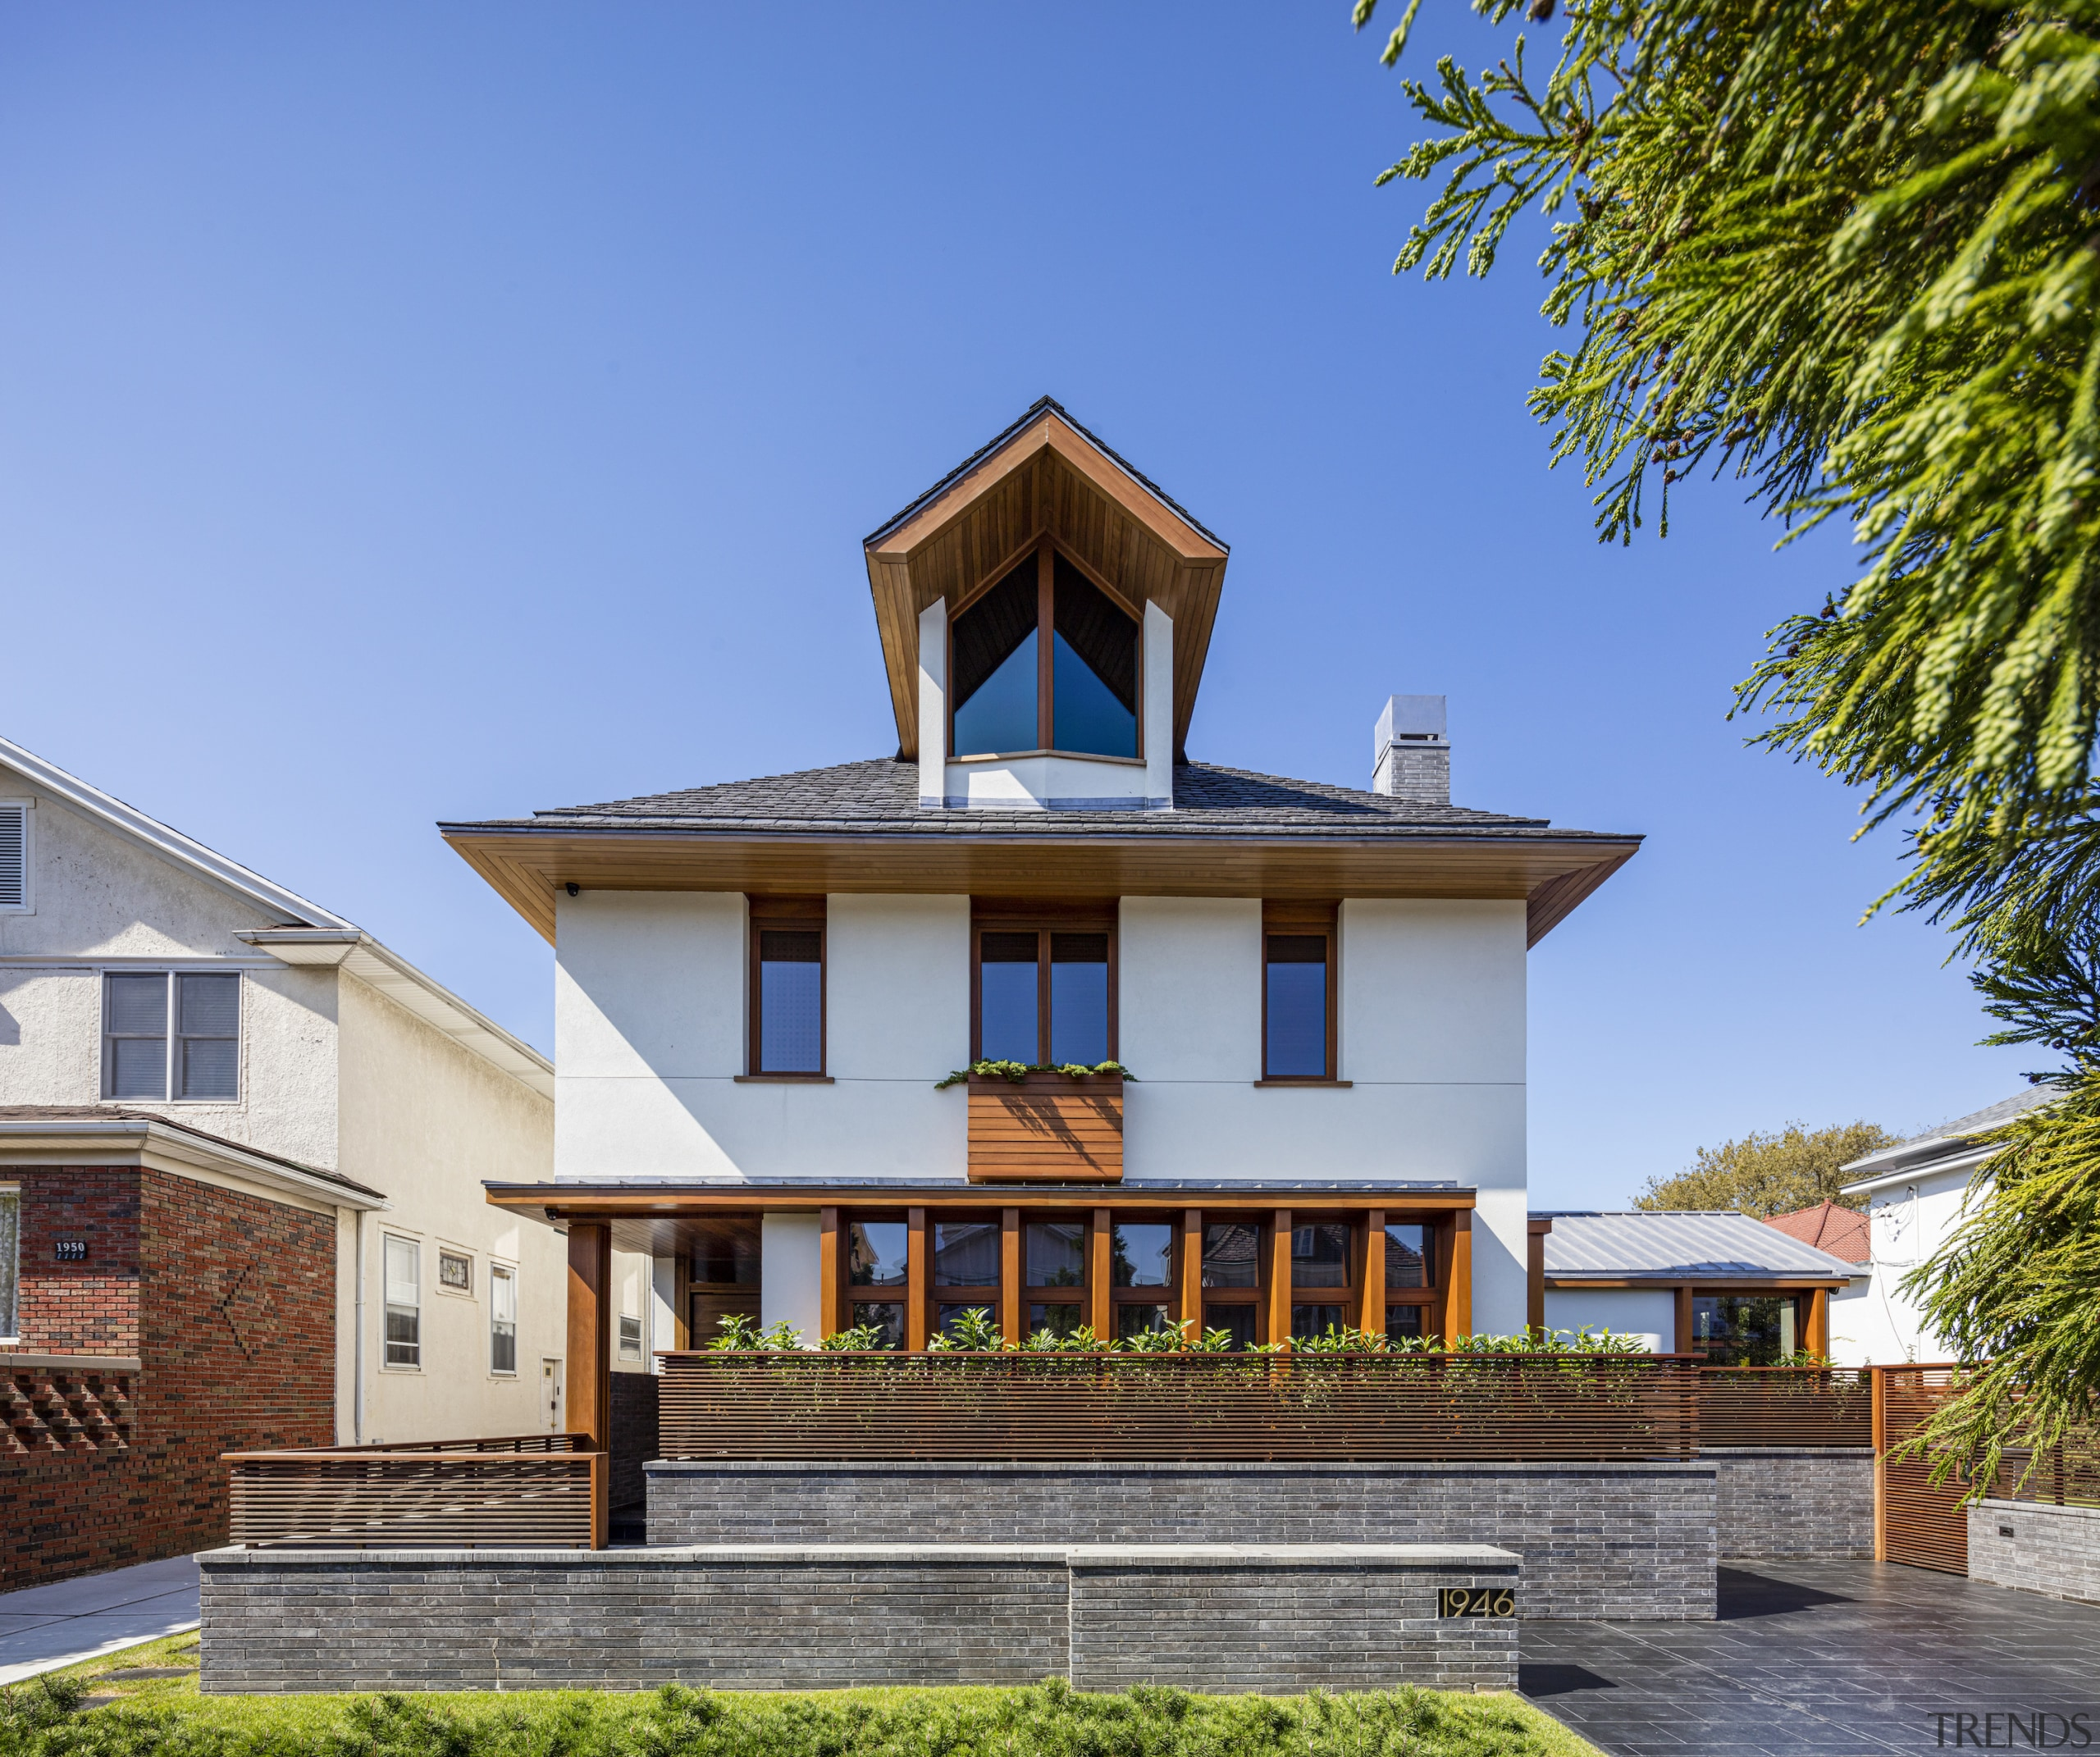 As well as a dramatic form, this home's